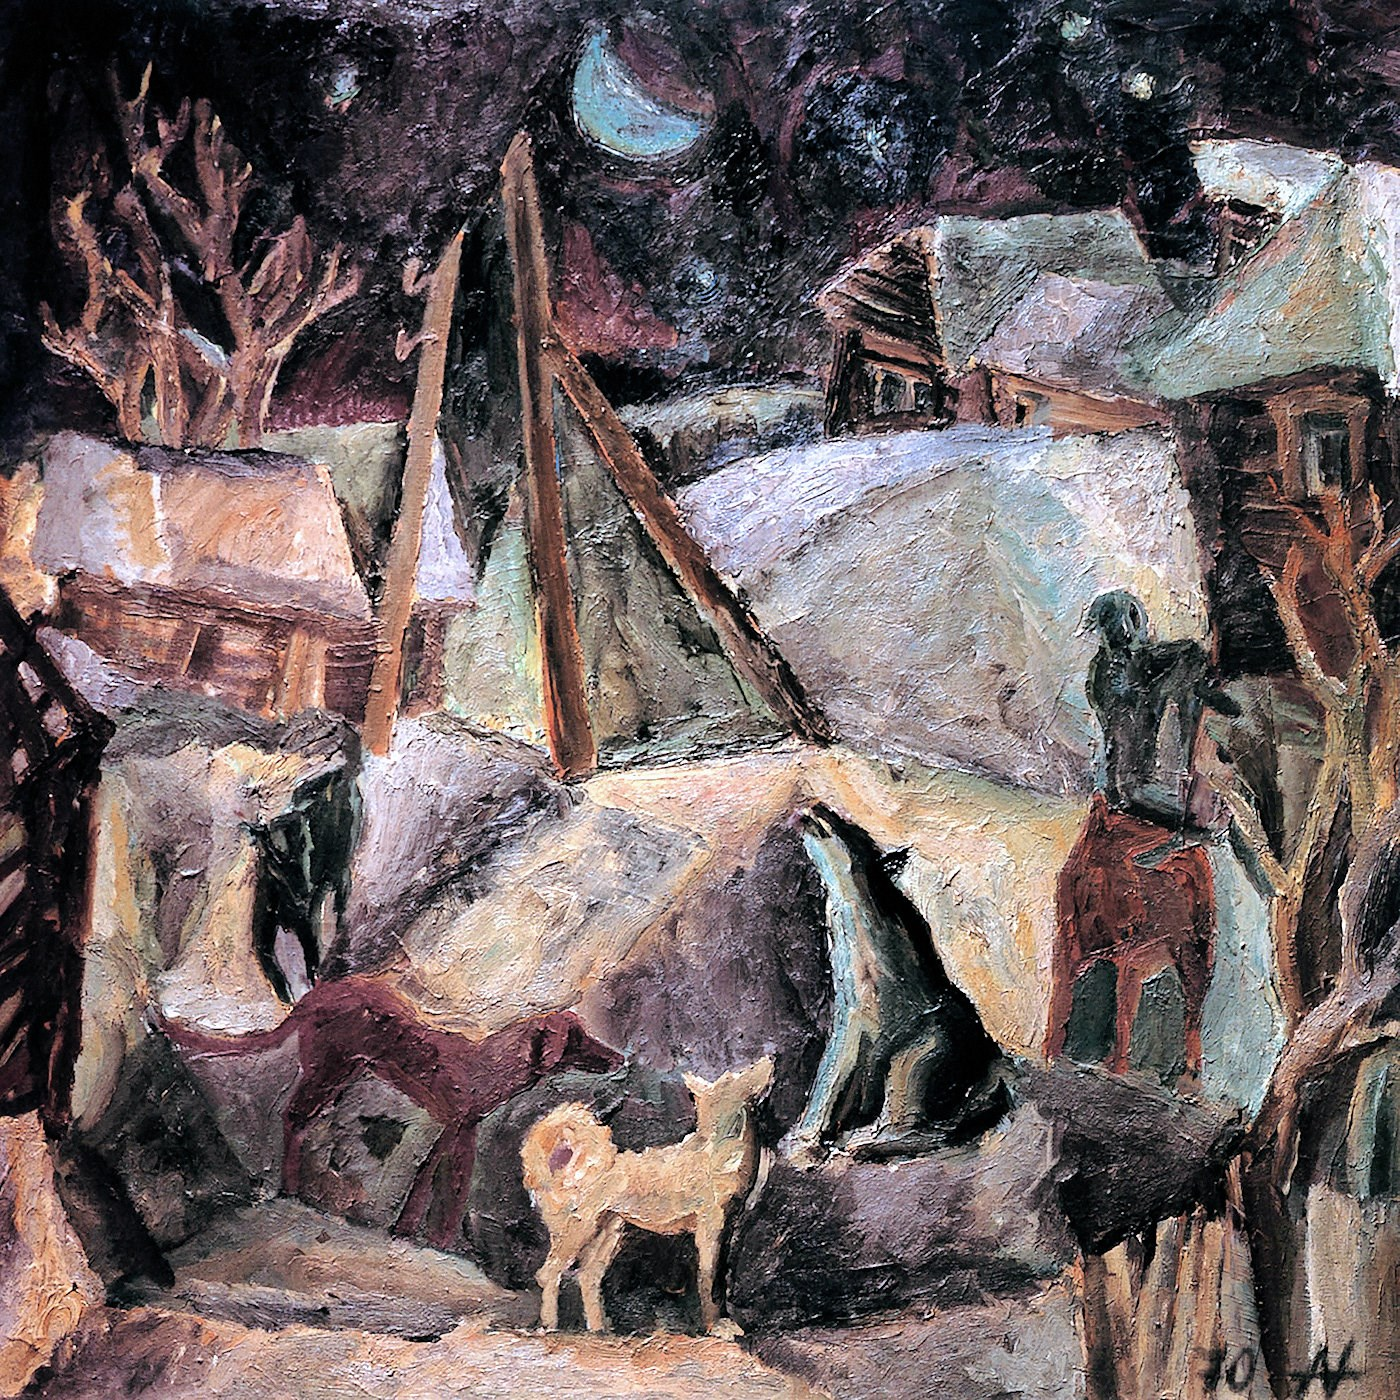 00-nikolai-andronov-dogs-on-a-winter-night-1970